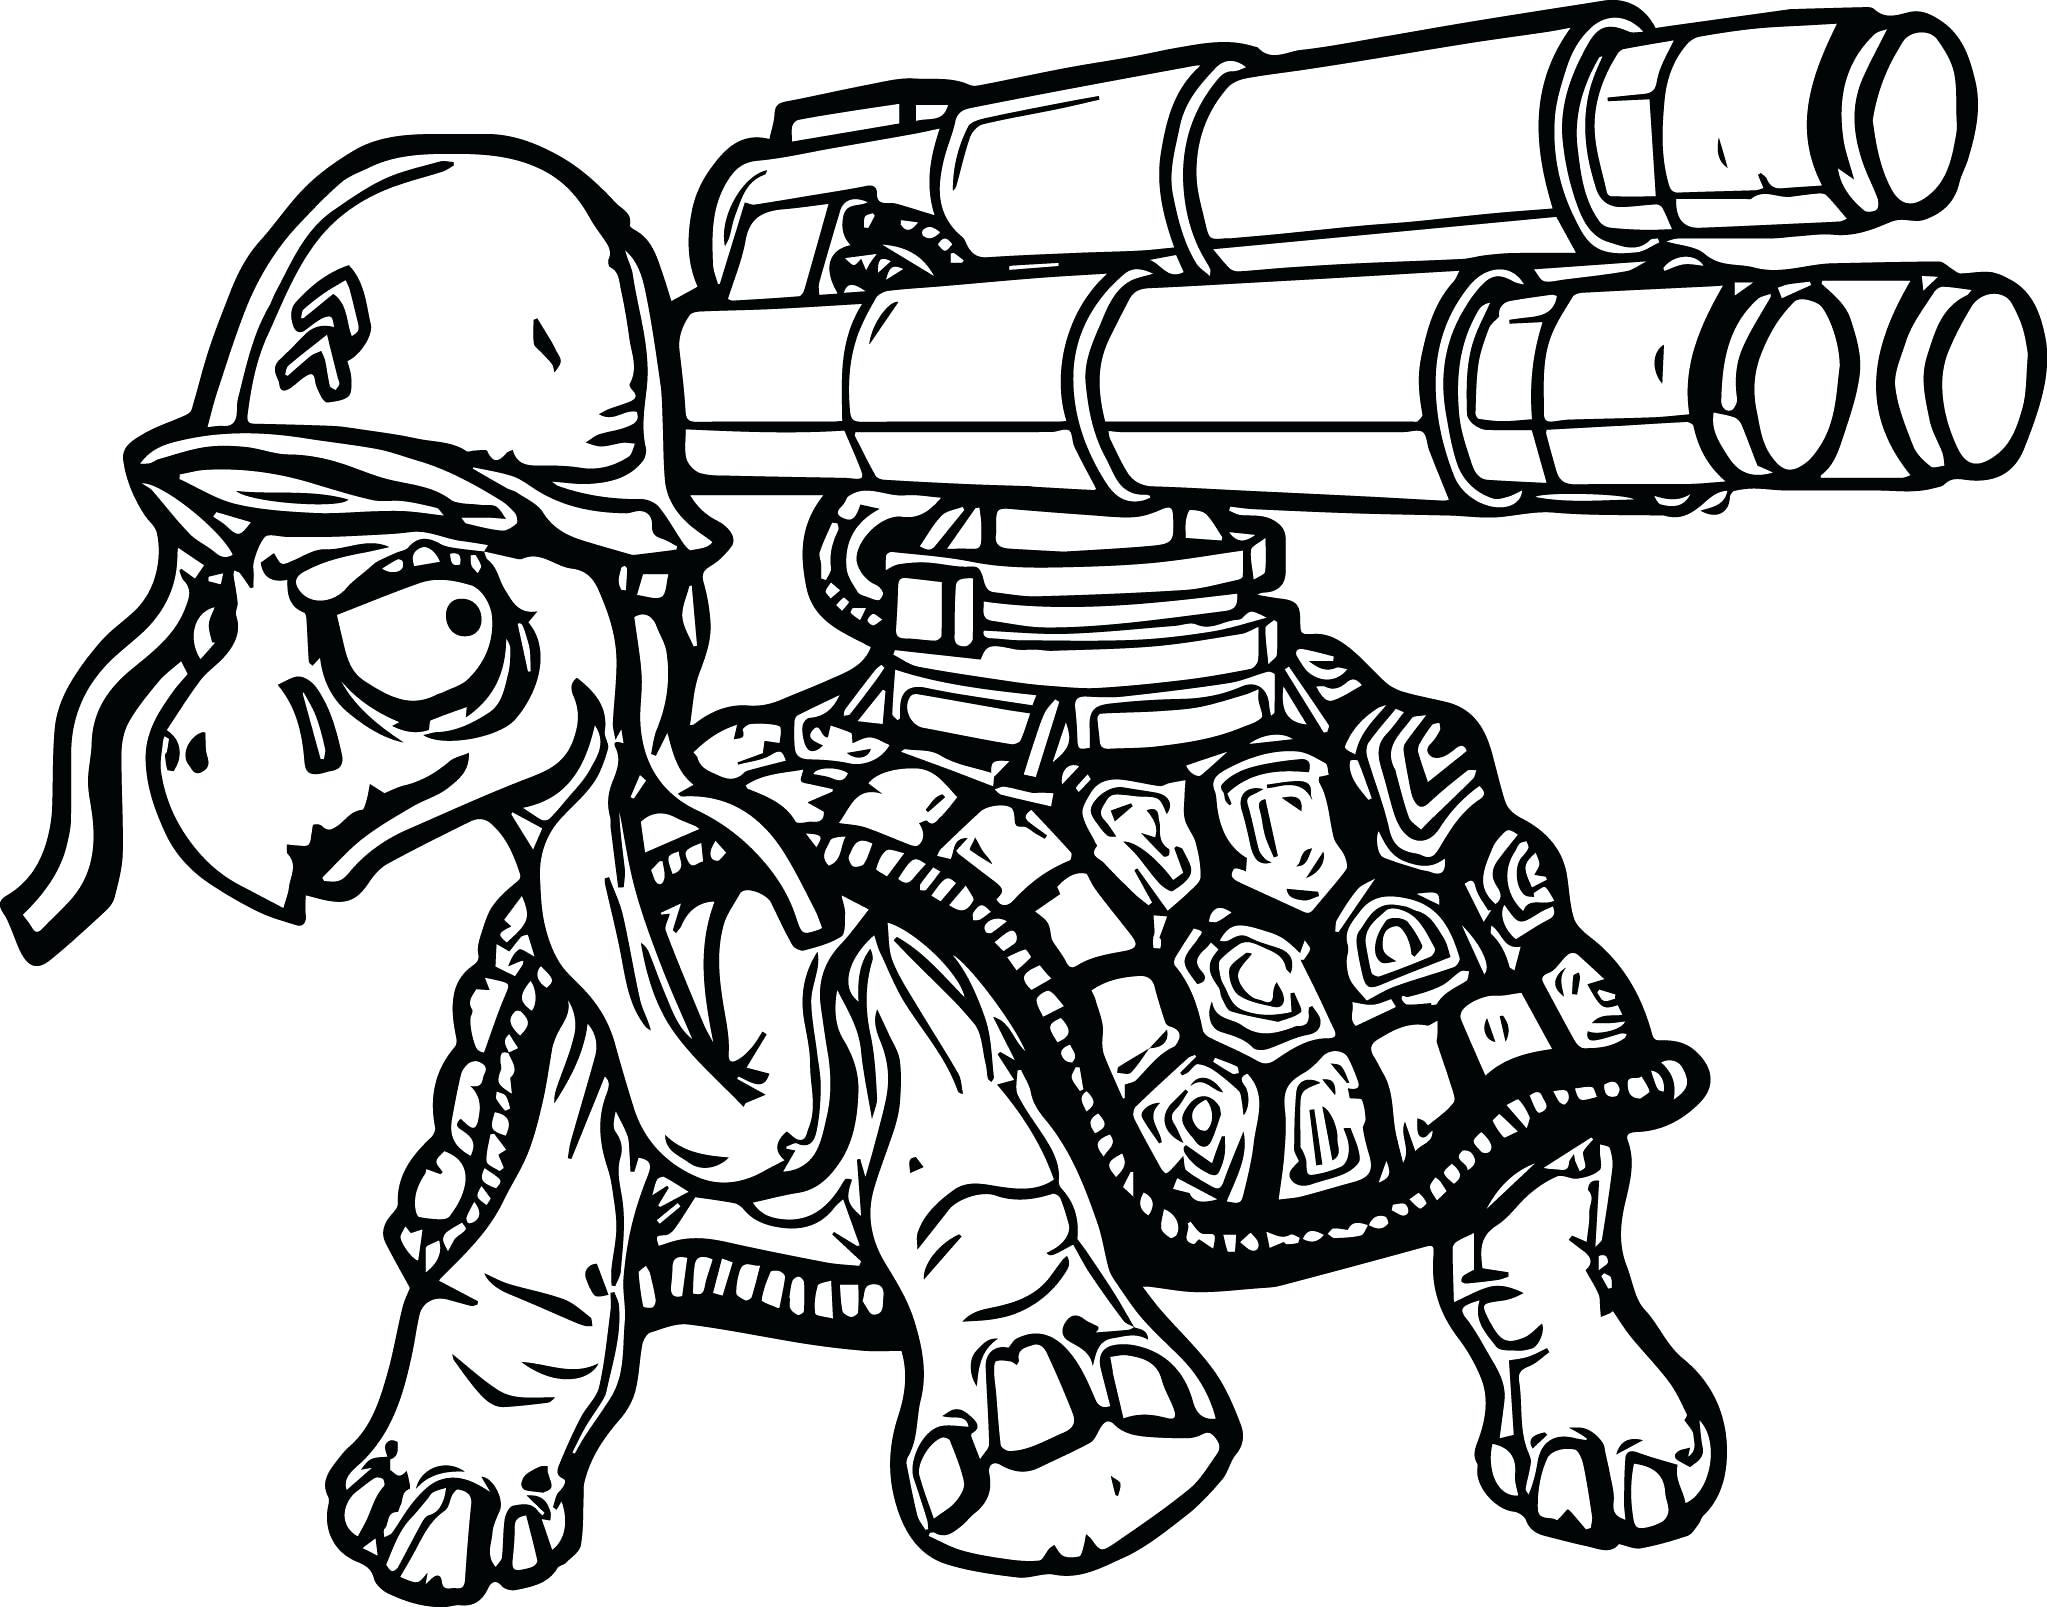 thompson machine gun coloring pages - photo#33